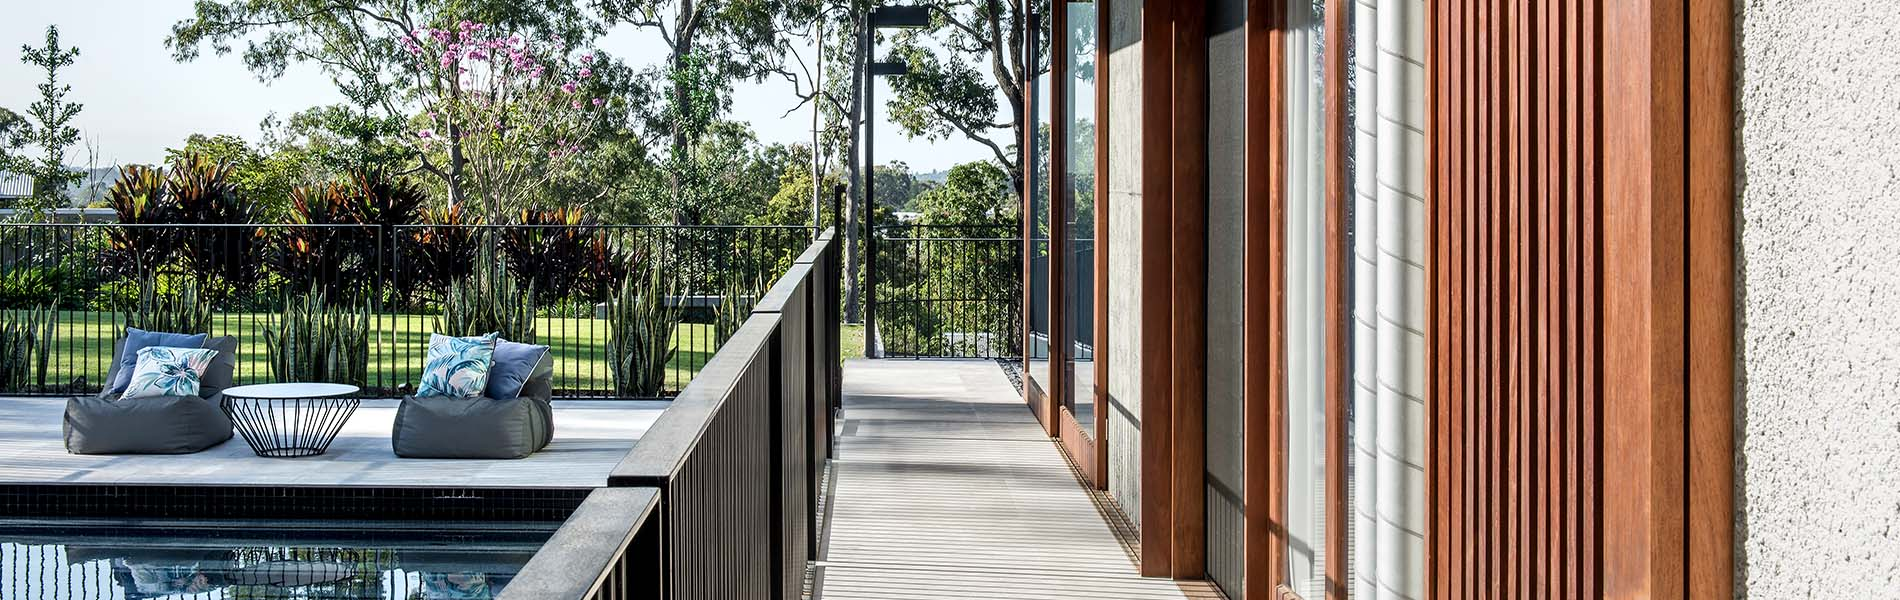 Designed by Architect Shaun Lockyer | Brisbane custom home builder Kalka